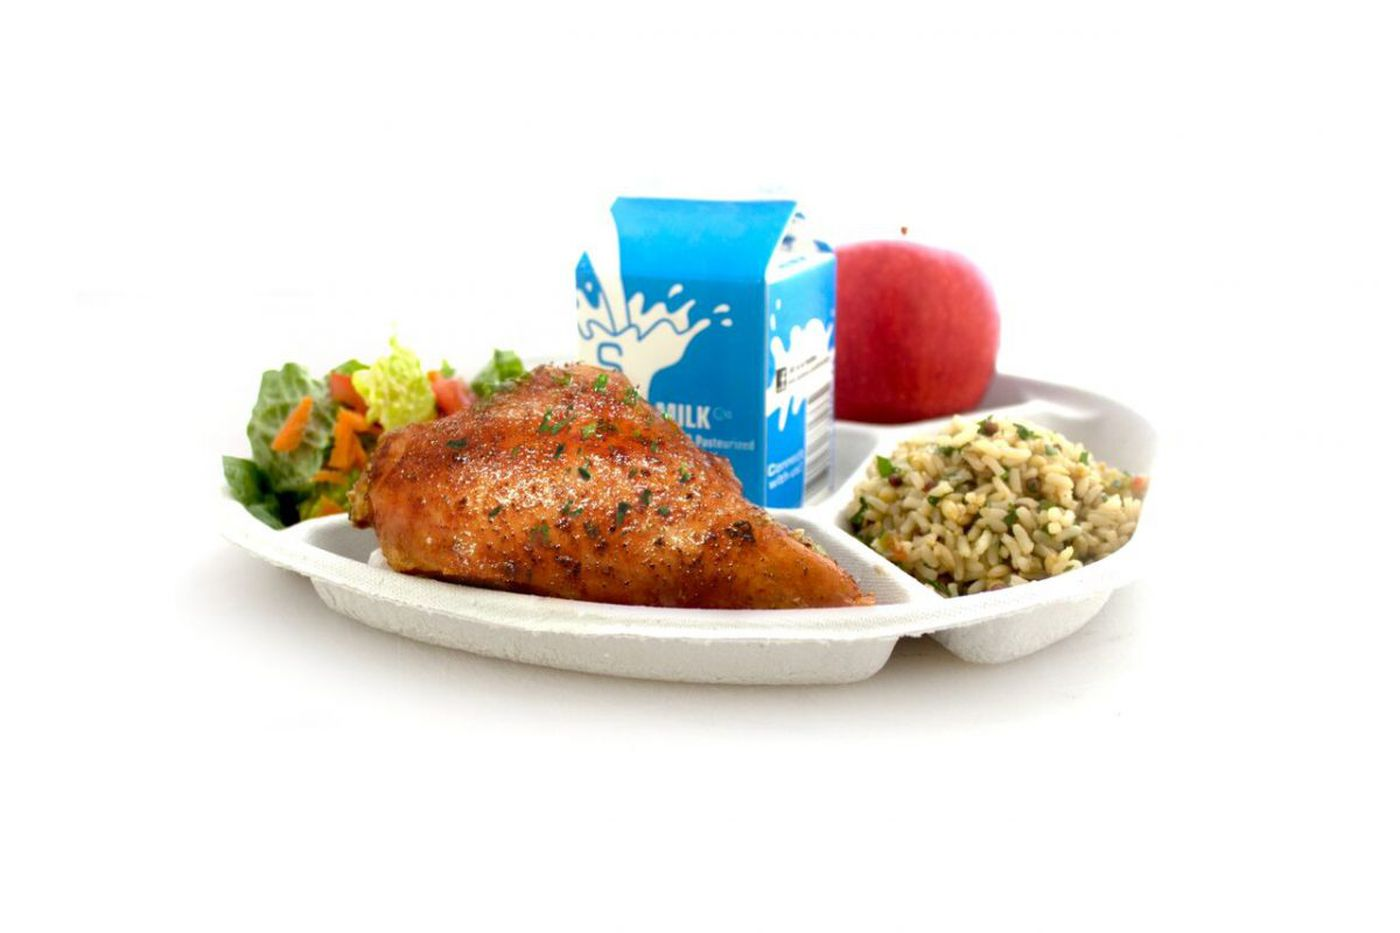 Philly schools ditch Styrofoam trays, embrace a greener lunch option